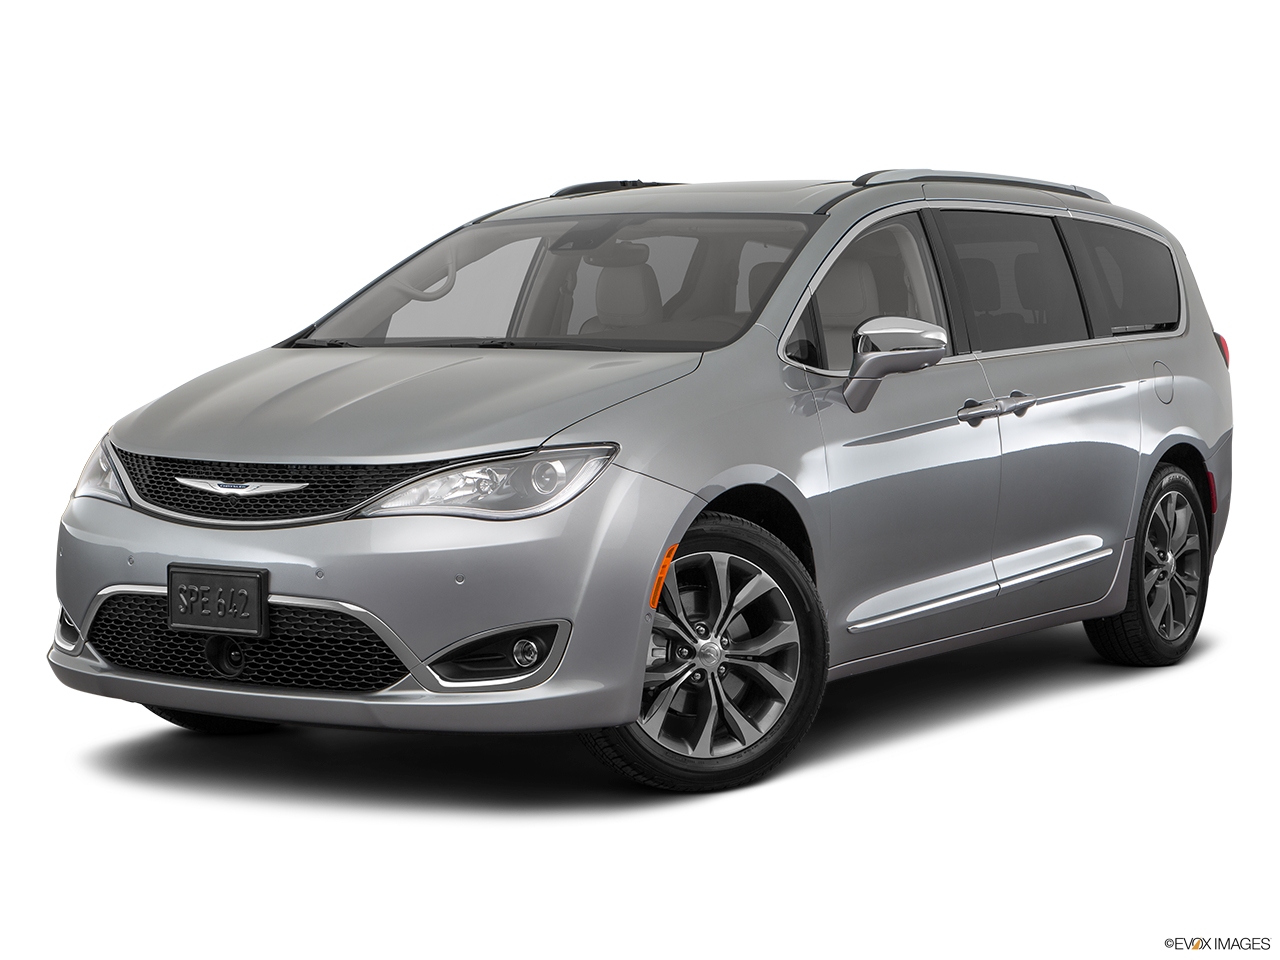 Test Drive A 2017 Chrysler Pacifica at Carl Burger Dodge Chrysler Jeep Ram World in La Mesa